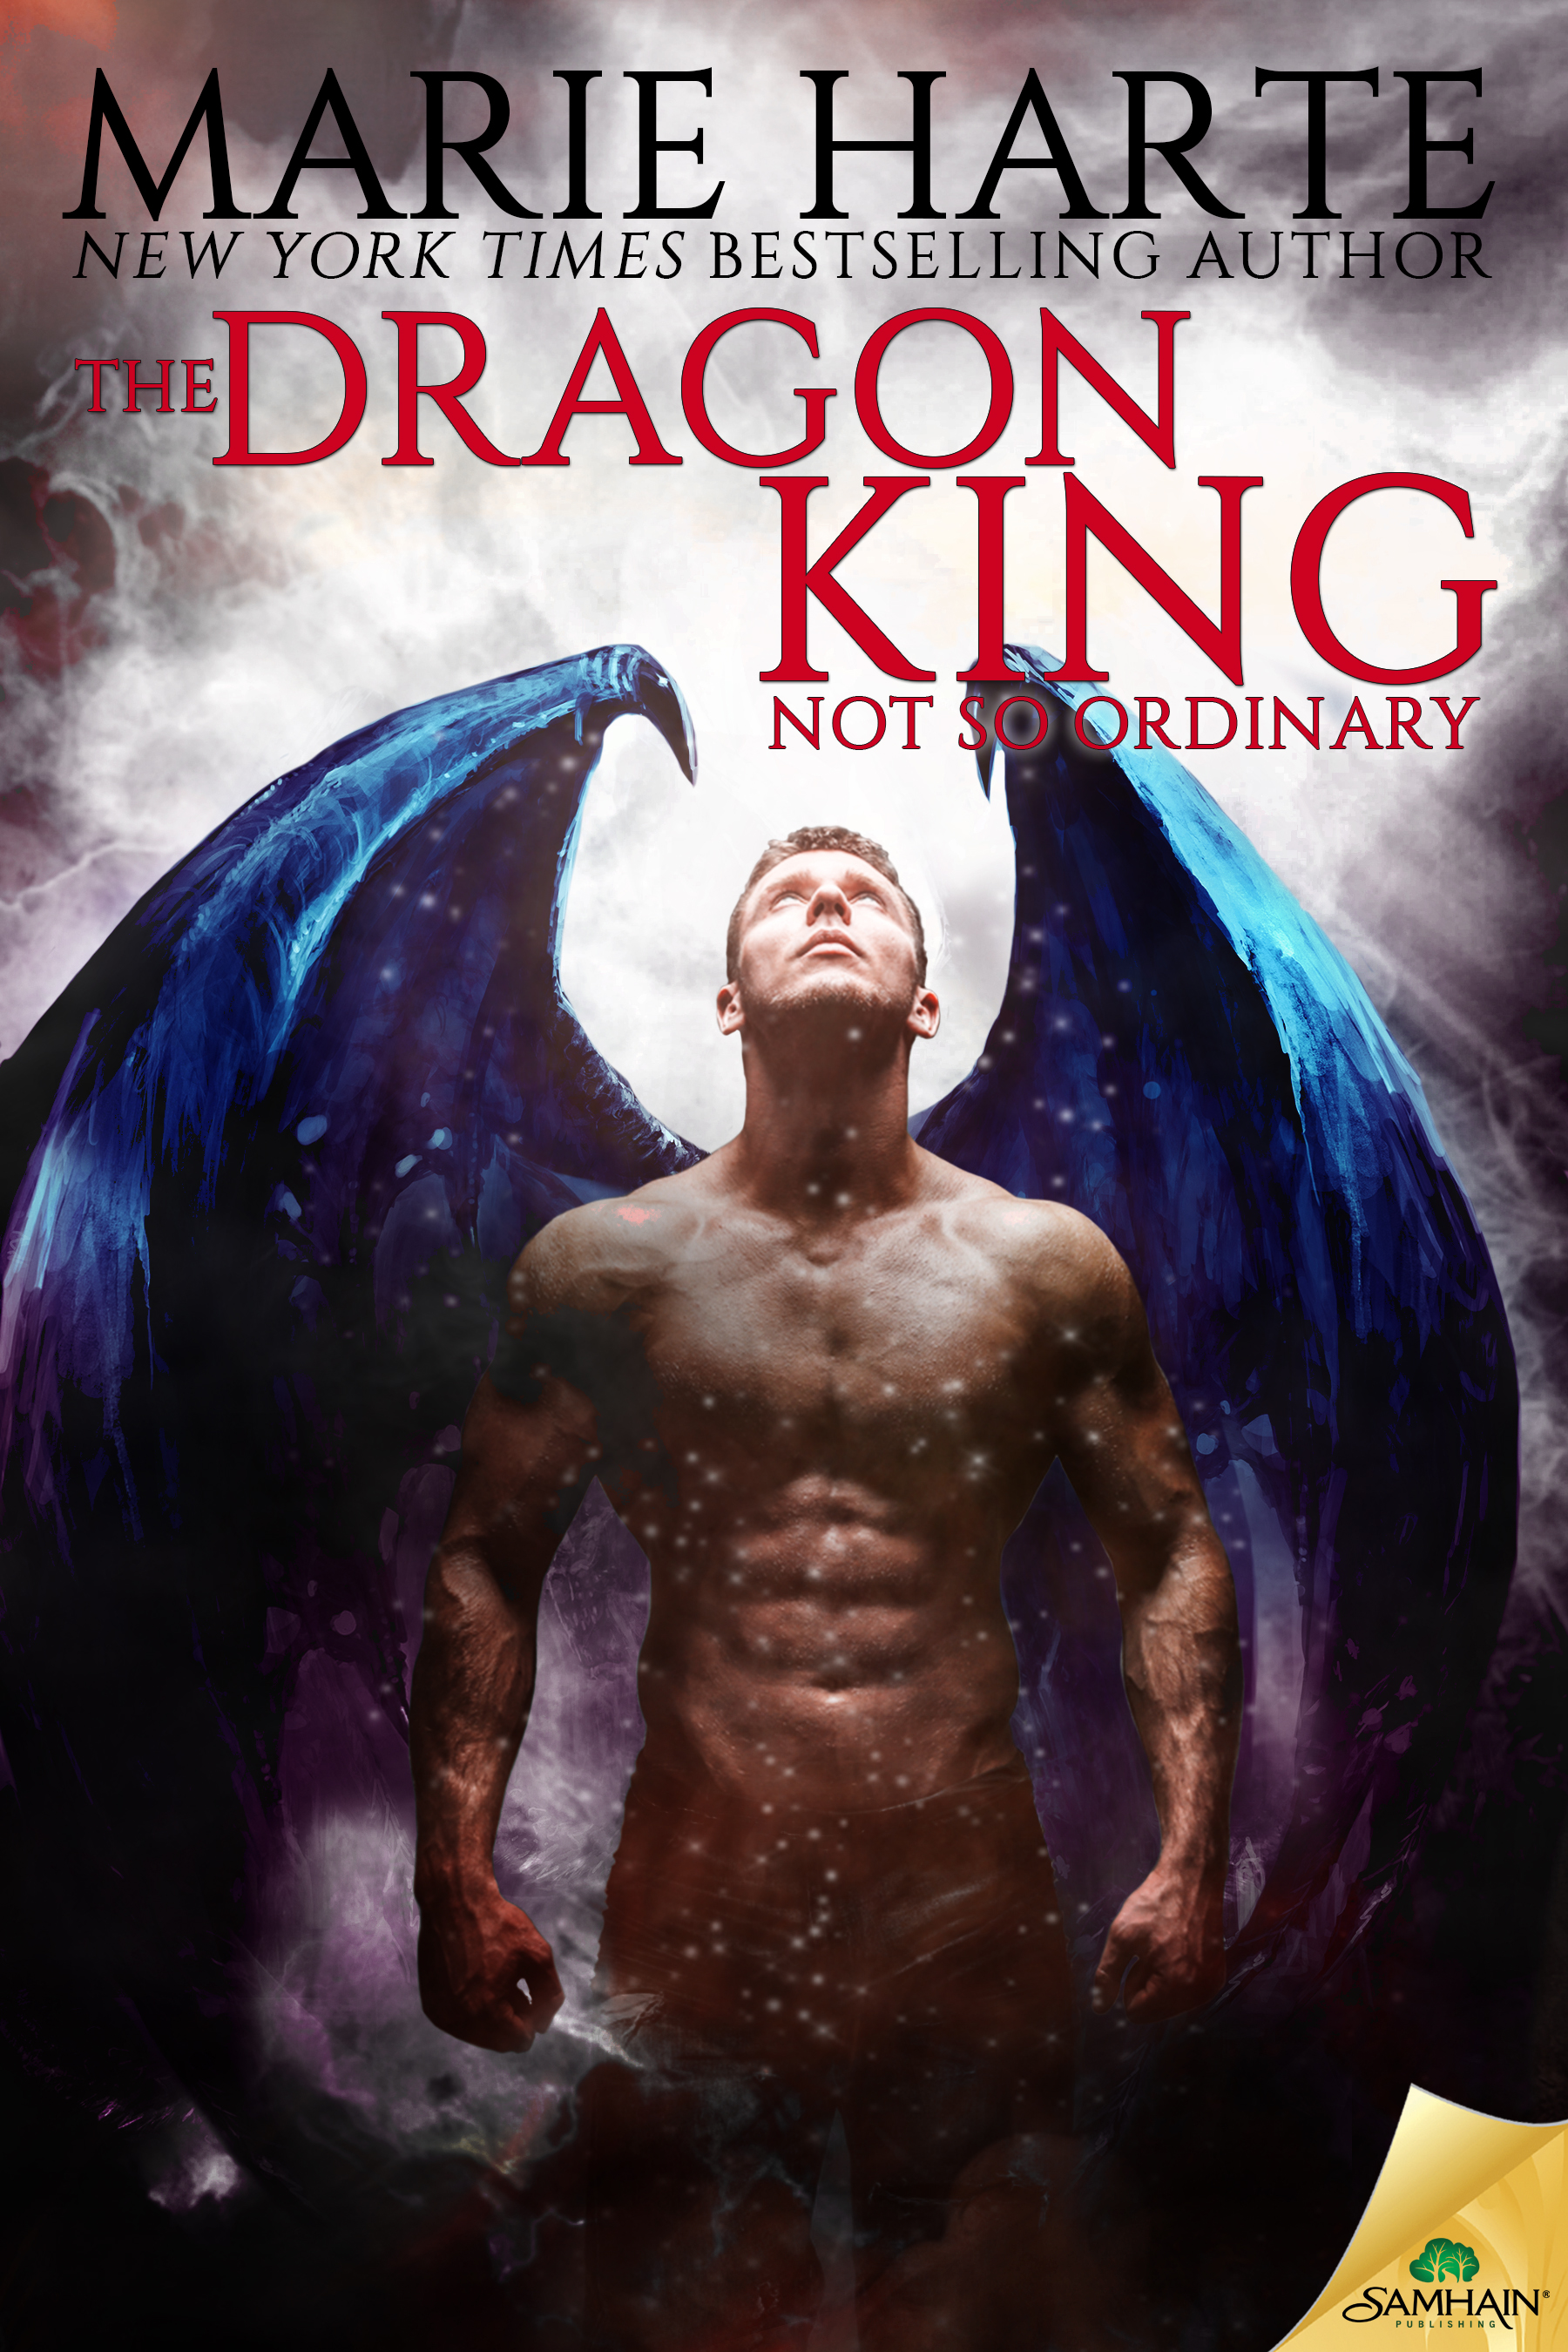 DRAGON KING: Not So Ordinary by Marie Harte Release Blitz